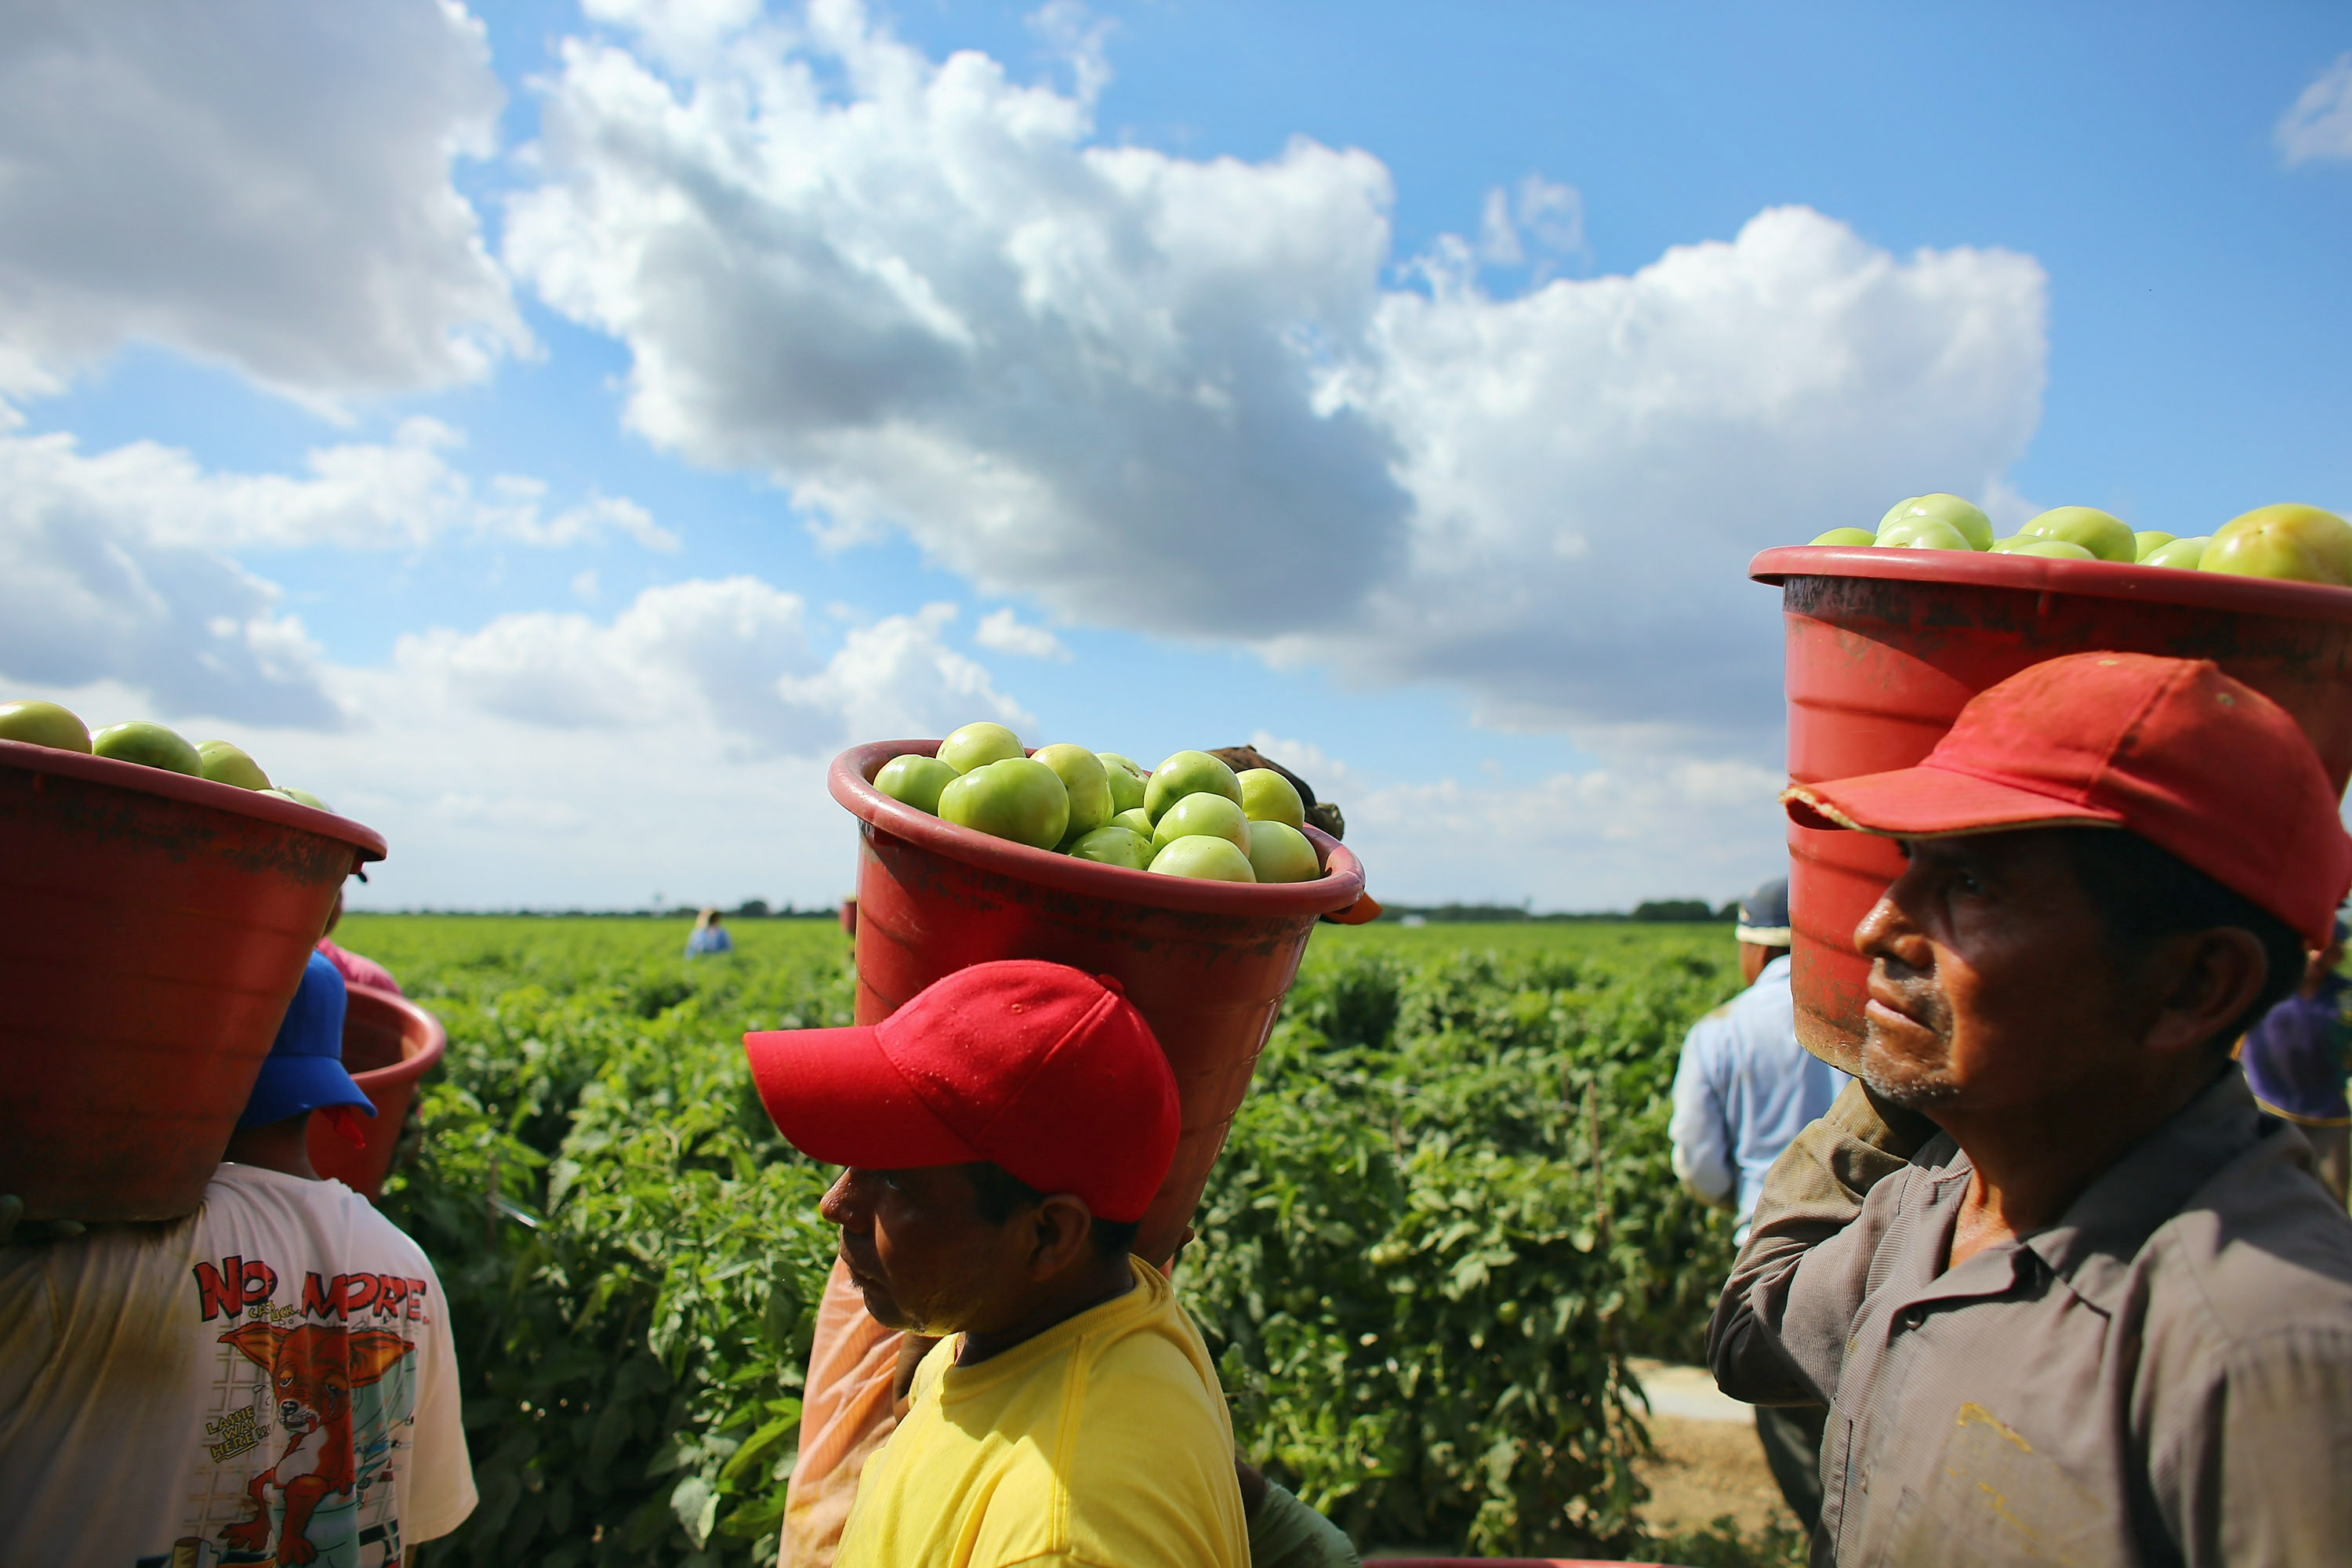 FLORIDA CITY, FL - FEBRUARY 06: Workers carry buckets of tomatoes as they harvest them in the fields of DiMare Farms on February 6, 2013 in Florida City, Florida. The United States government and Mexico reached a tentative agreement that would go into effect around March 4th, on cross-border trade in tomatoes, providing help for the Florida growers who said the Mexican tomato growers were dumping their product on the U.S. markets. (Photo by Joe Raedle/Getty Images)